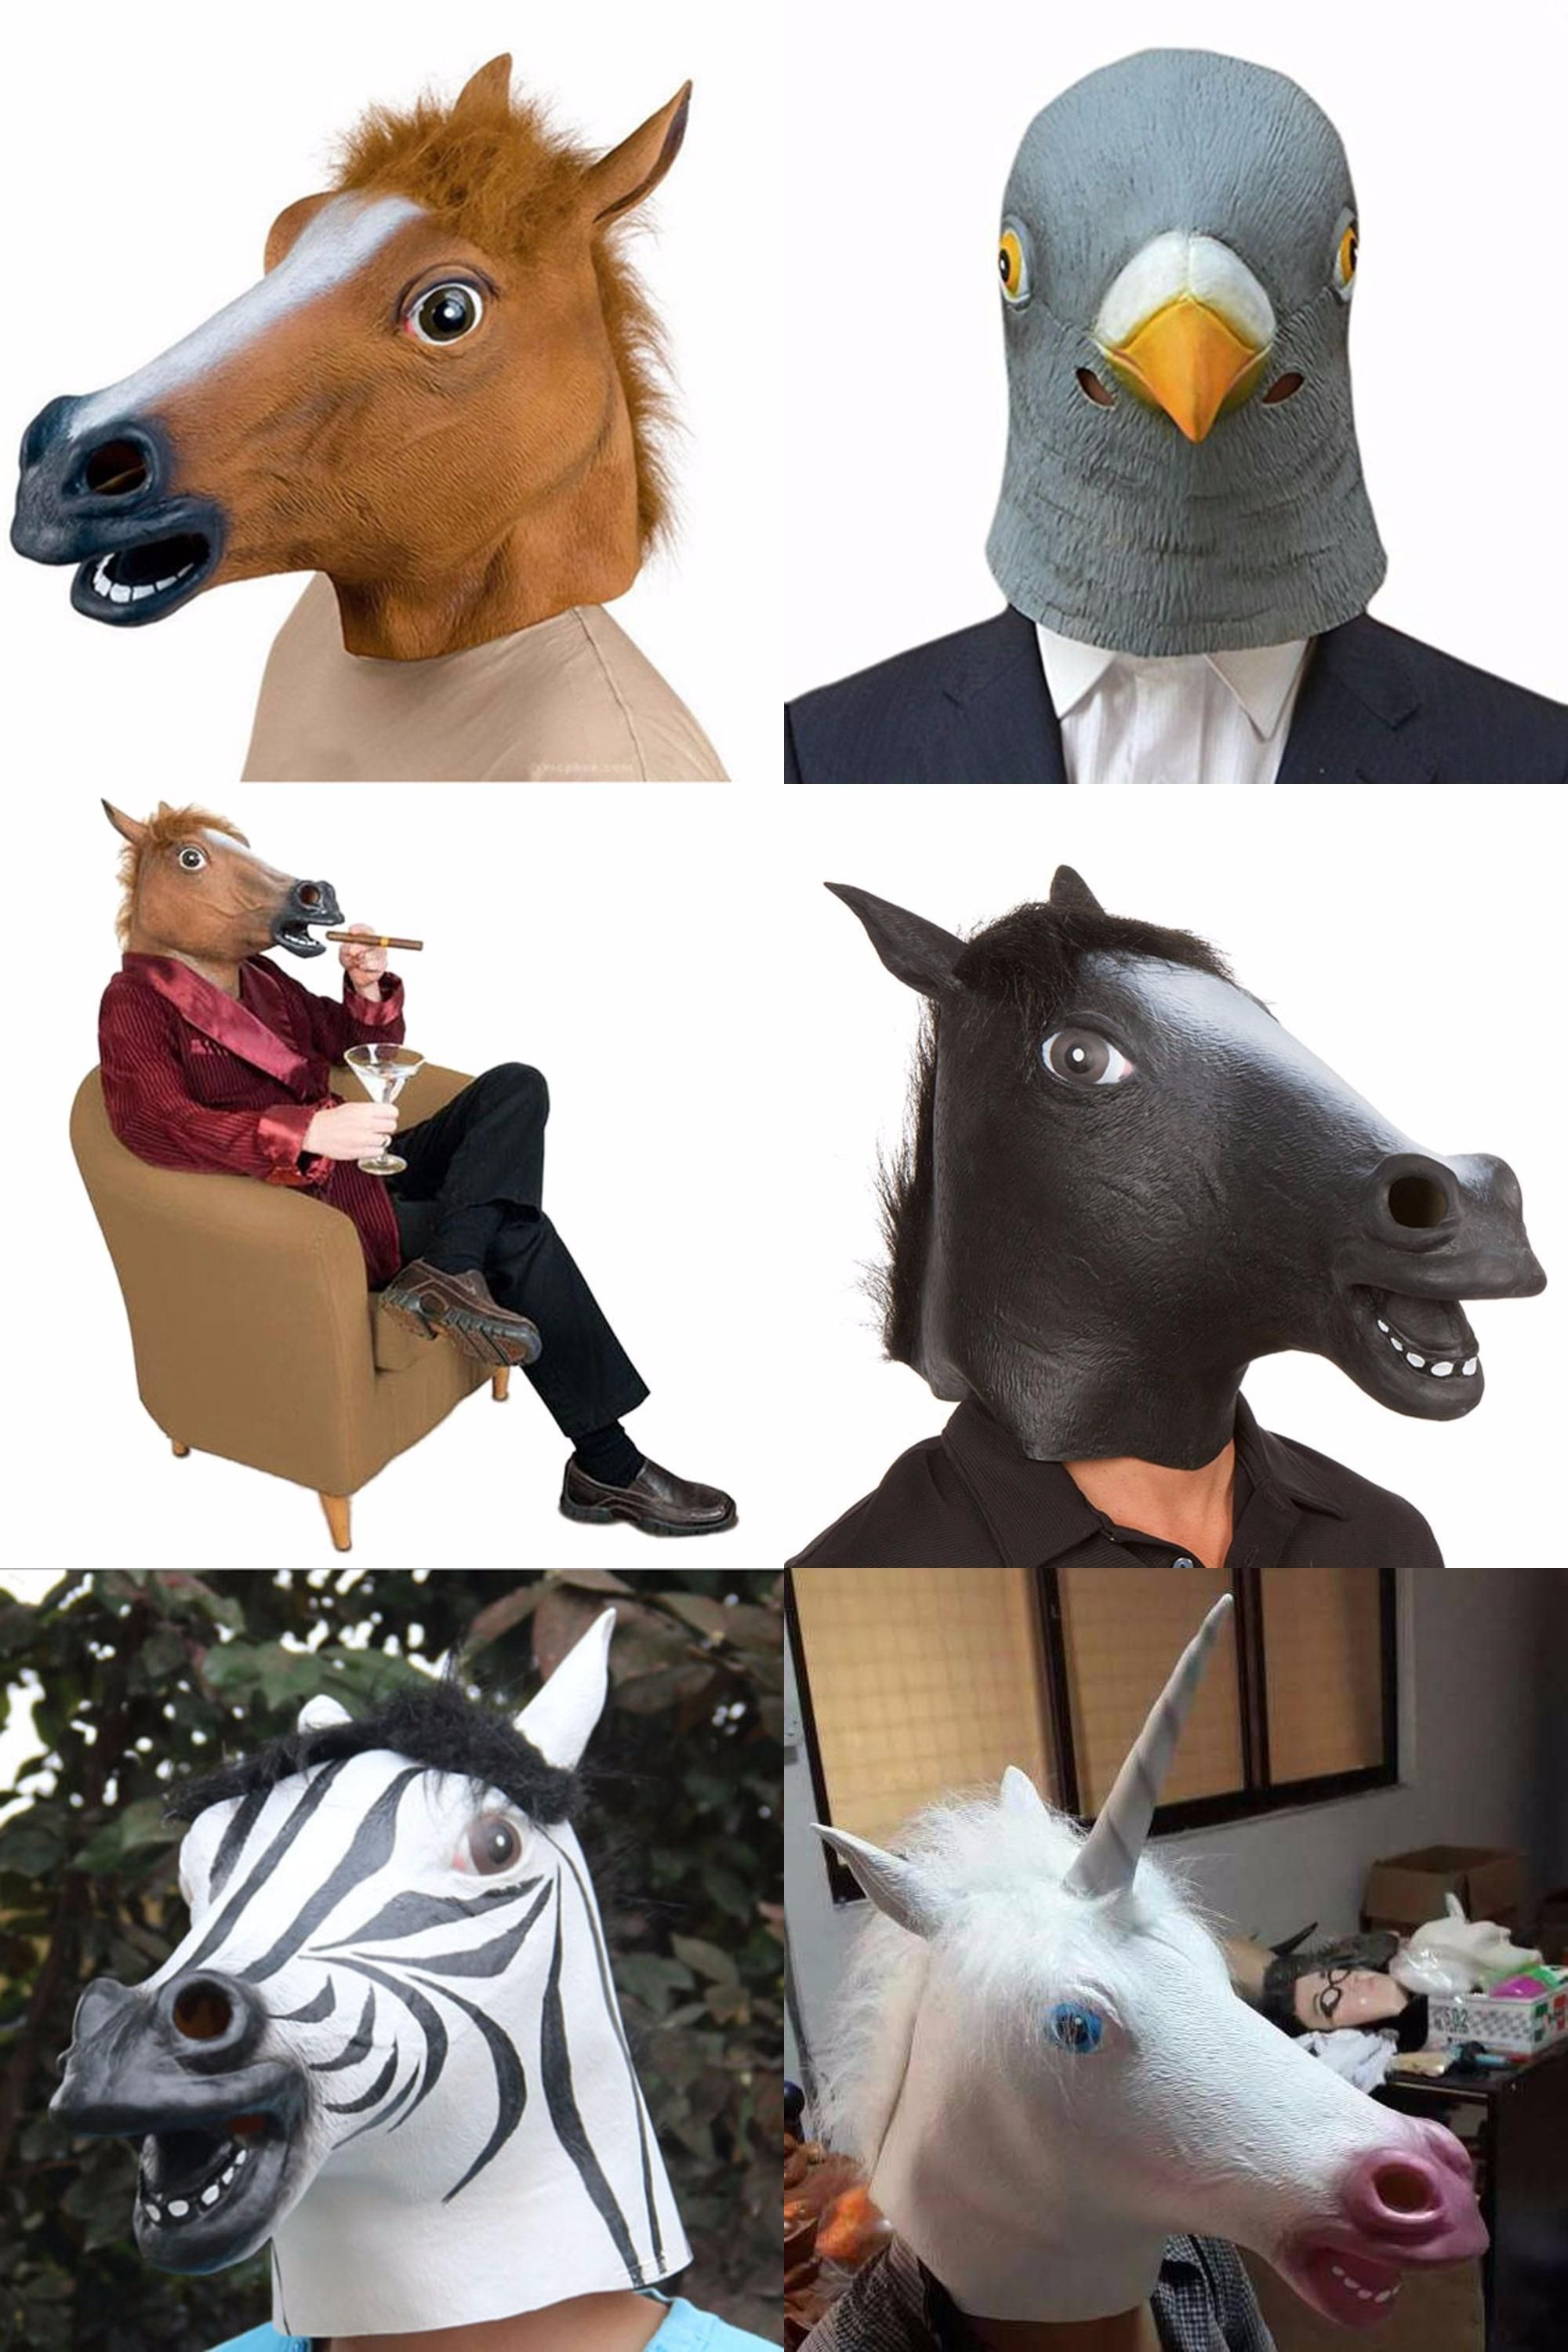 Visit to Buy] Creepy Unicorn Horse Animal's Head Latex Mask ...